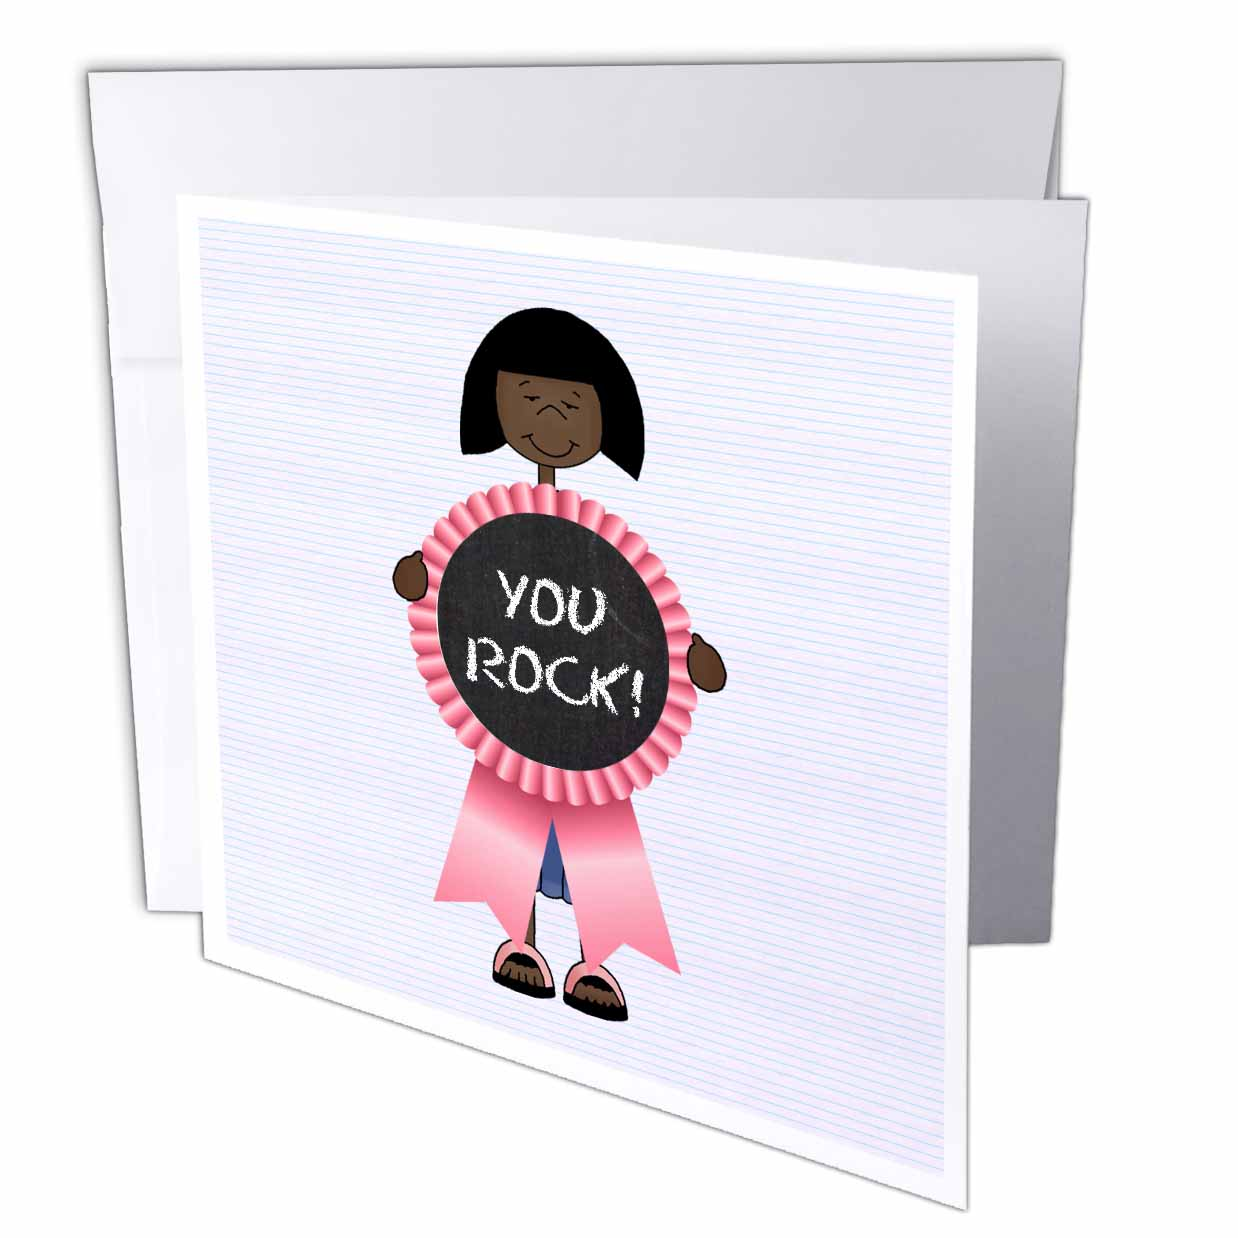 3dRose Little Dark Haired Girl with Pink YOU ROCK Ribbon, Greeting Cards, 6 x 6 inches, set of 12